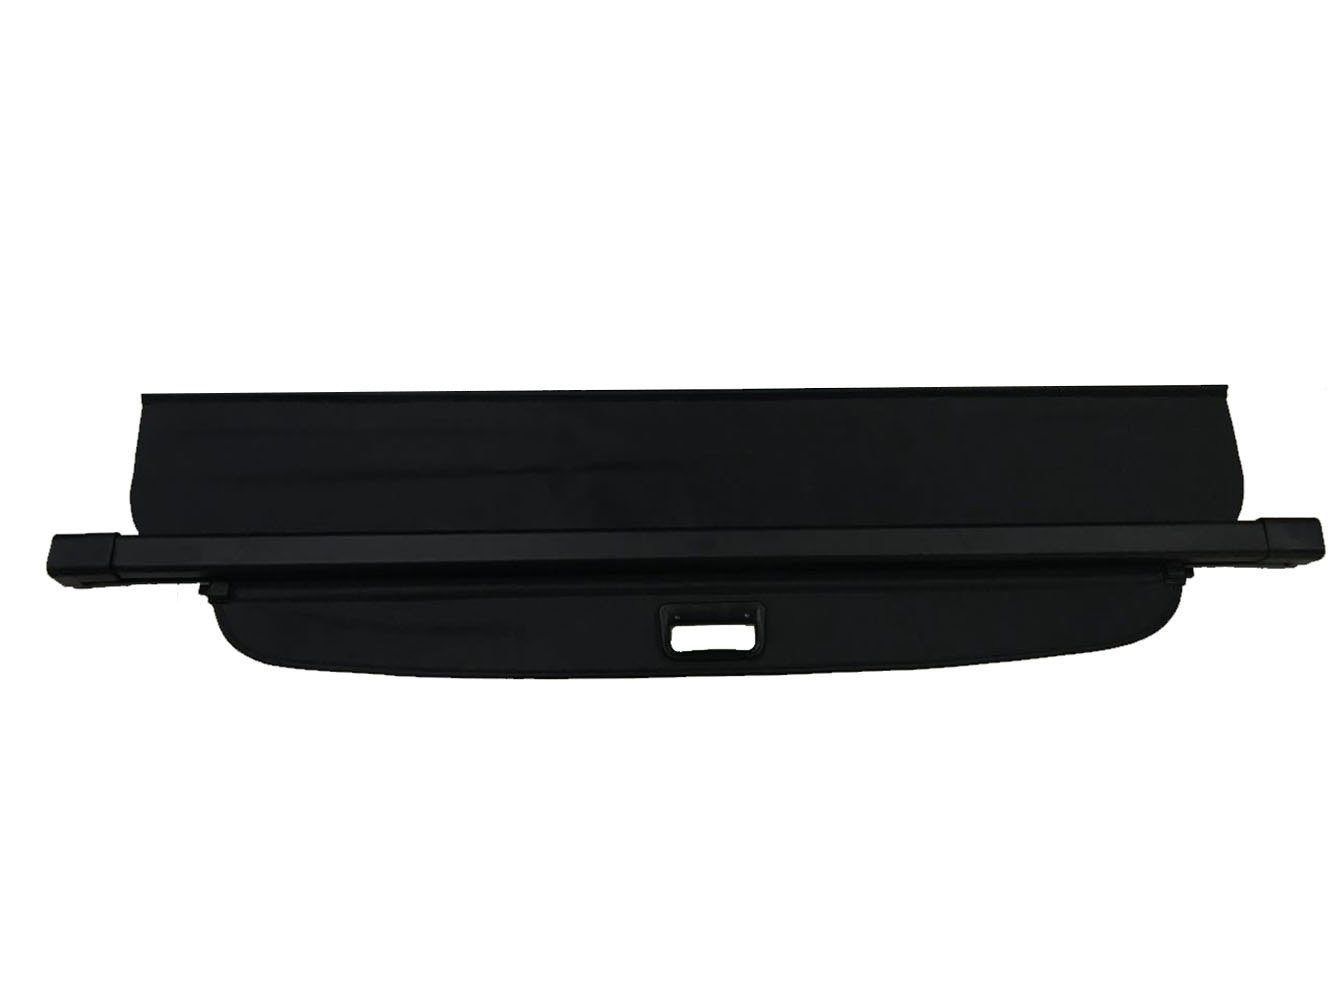 Cargo Cover for 11-18 Jeep Grand Cherokee Trunk Shielding Shade 2019 grand cherokee Black By Kaungka(Updated Version:There is no gap between the back seats and the cover) by Kaungka